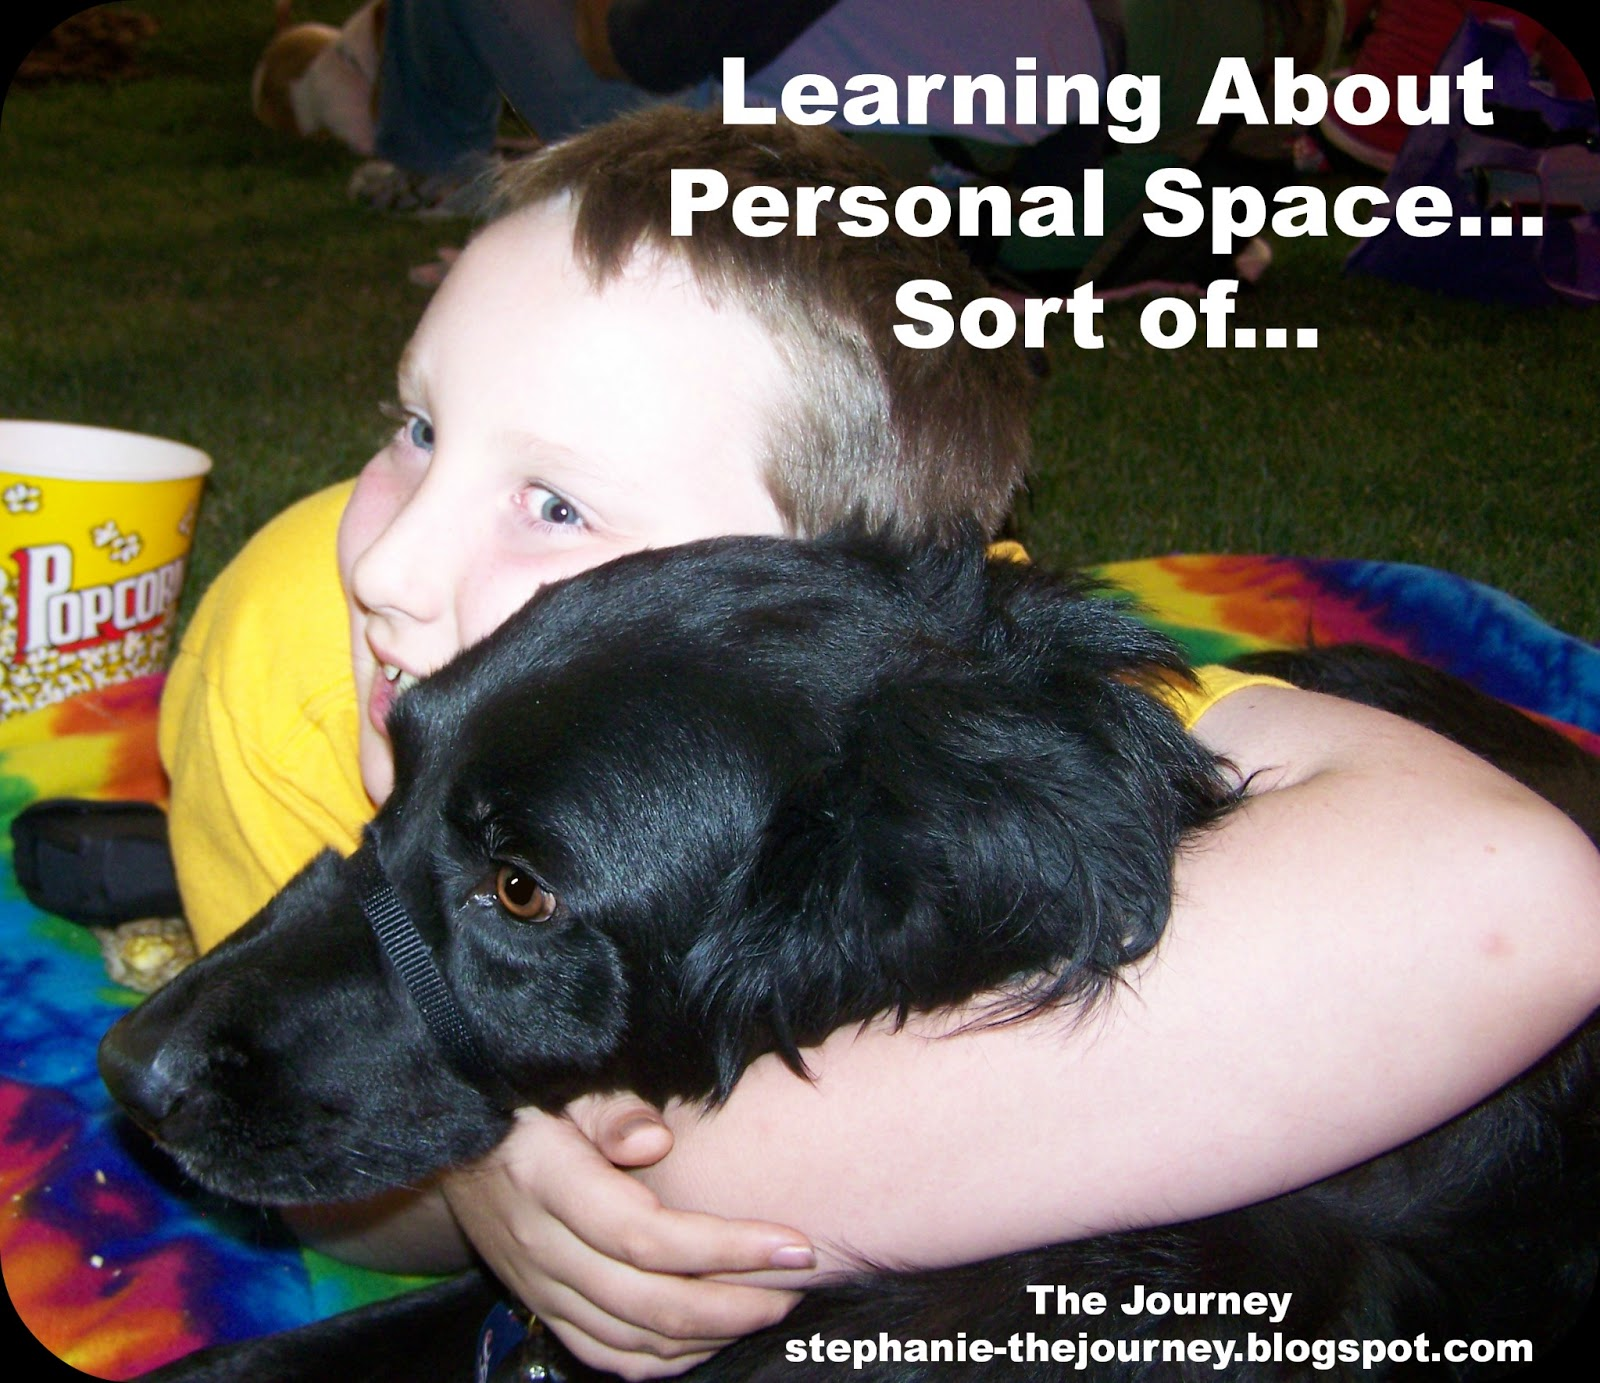 The Journey Unexpected Learning About Personal Space